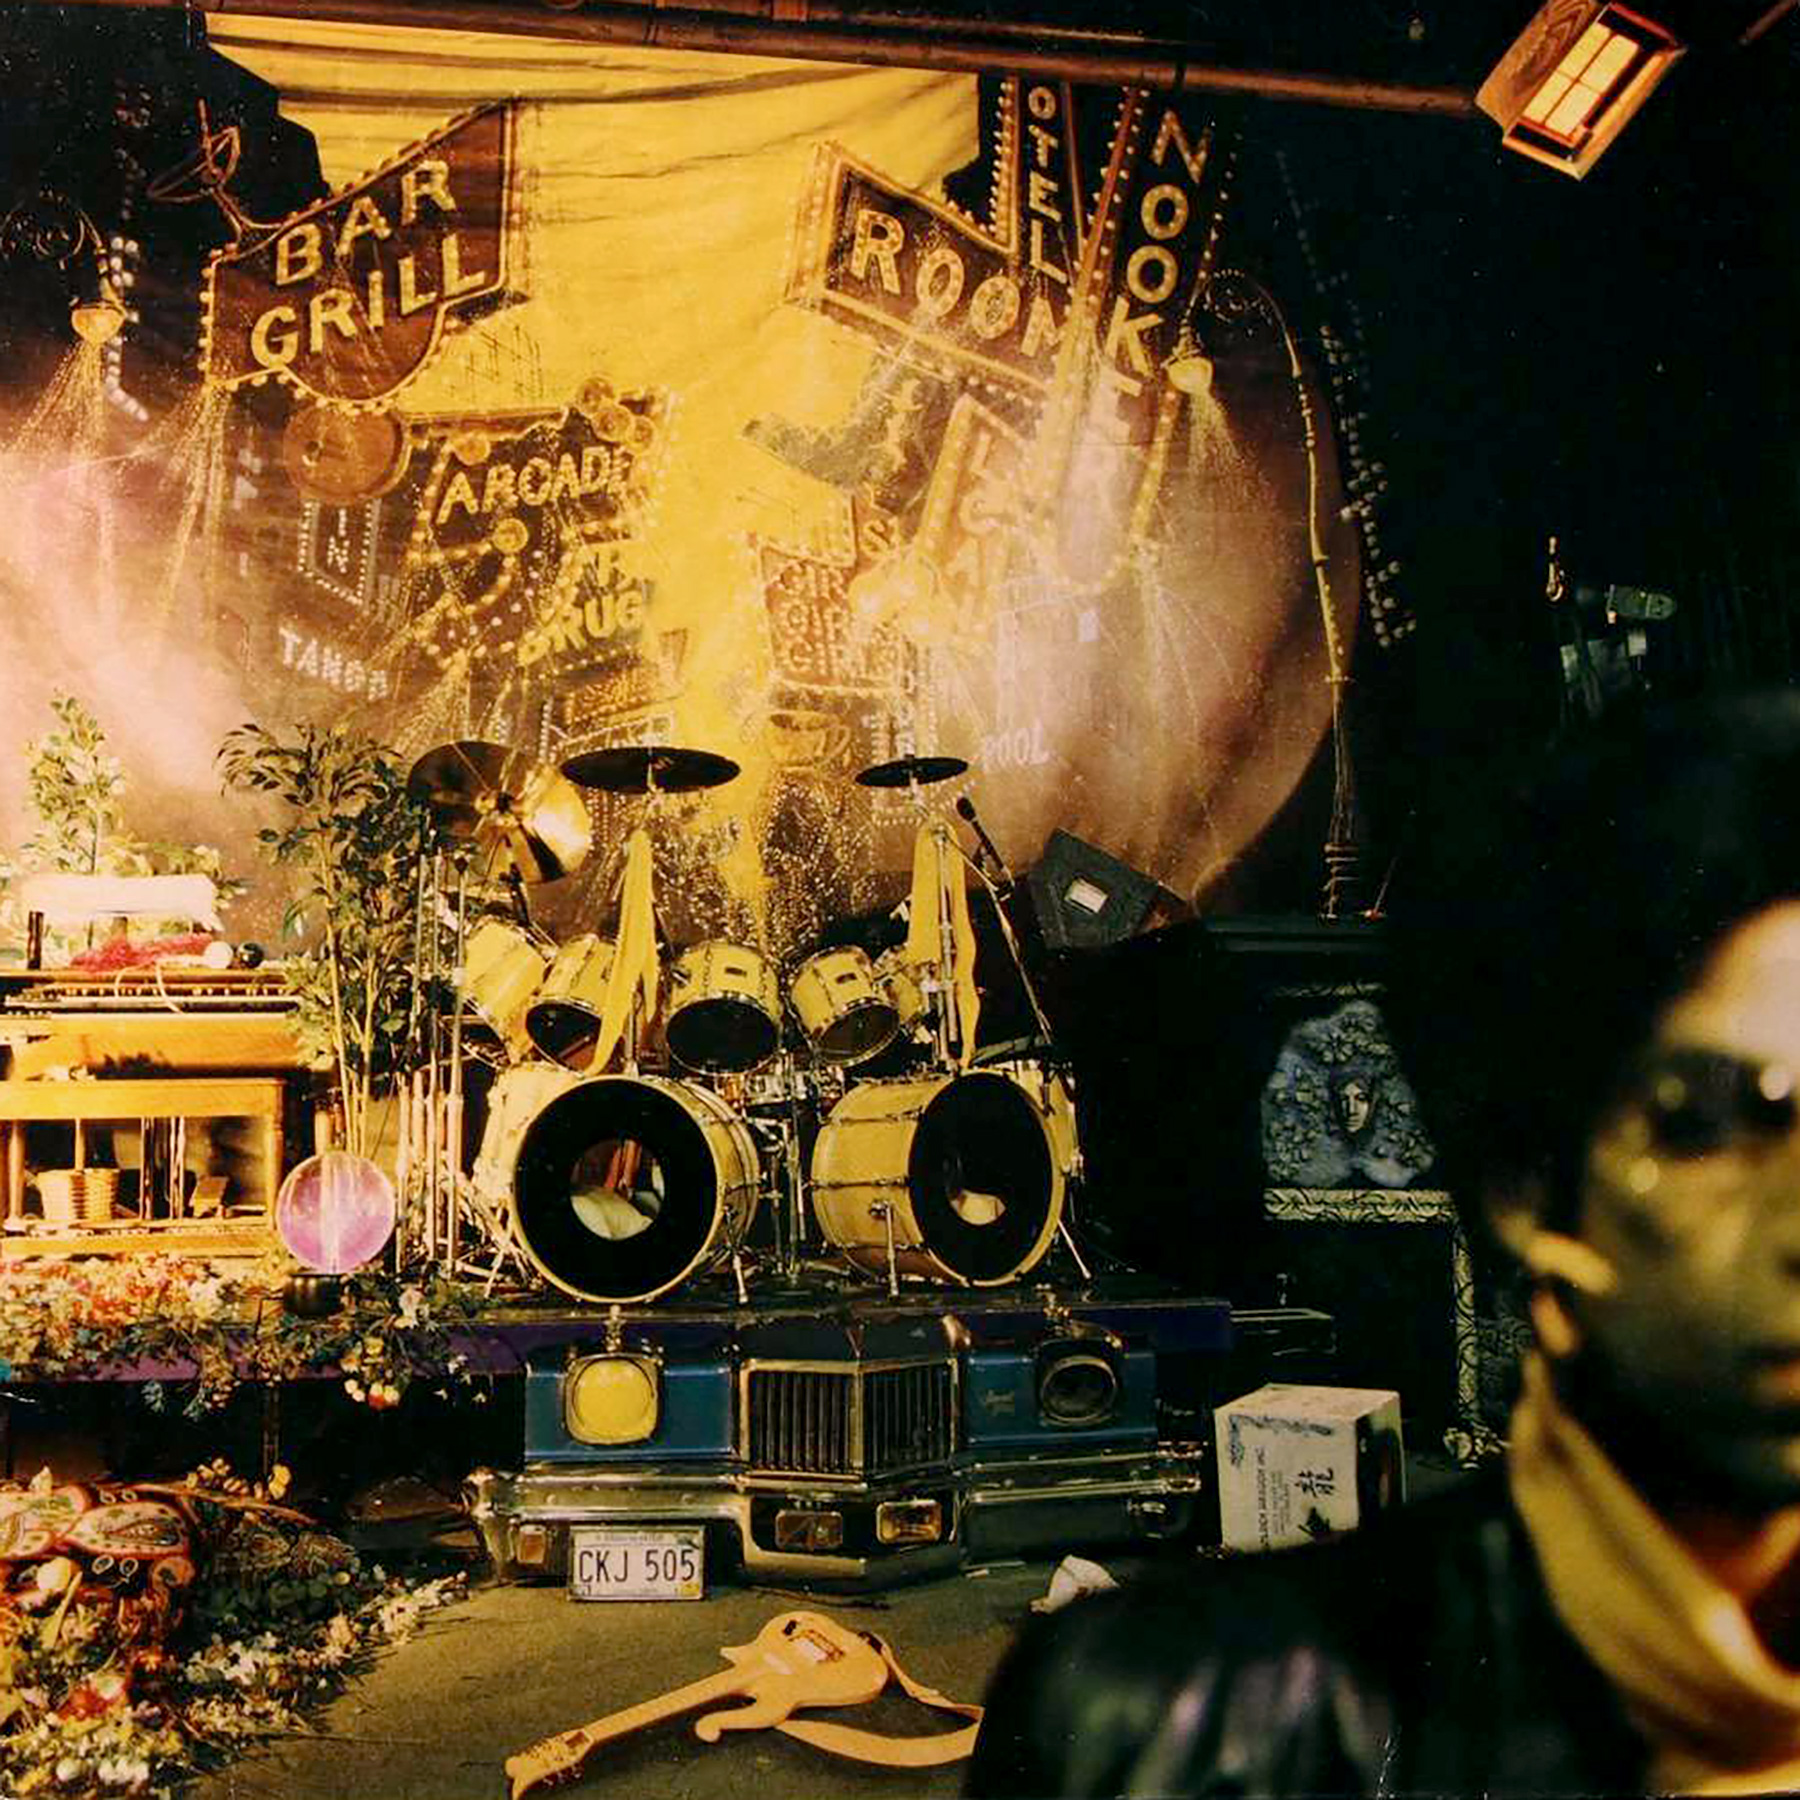 Prince Sign O times album cover